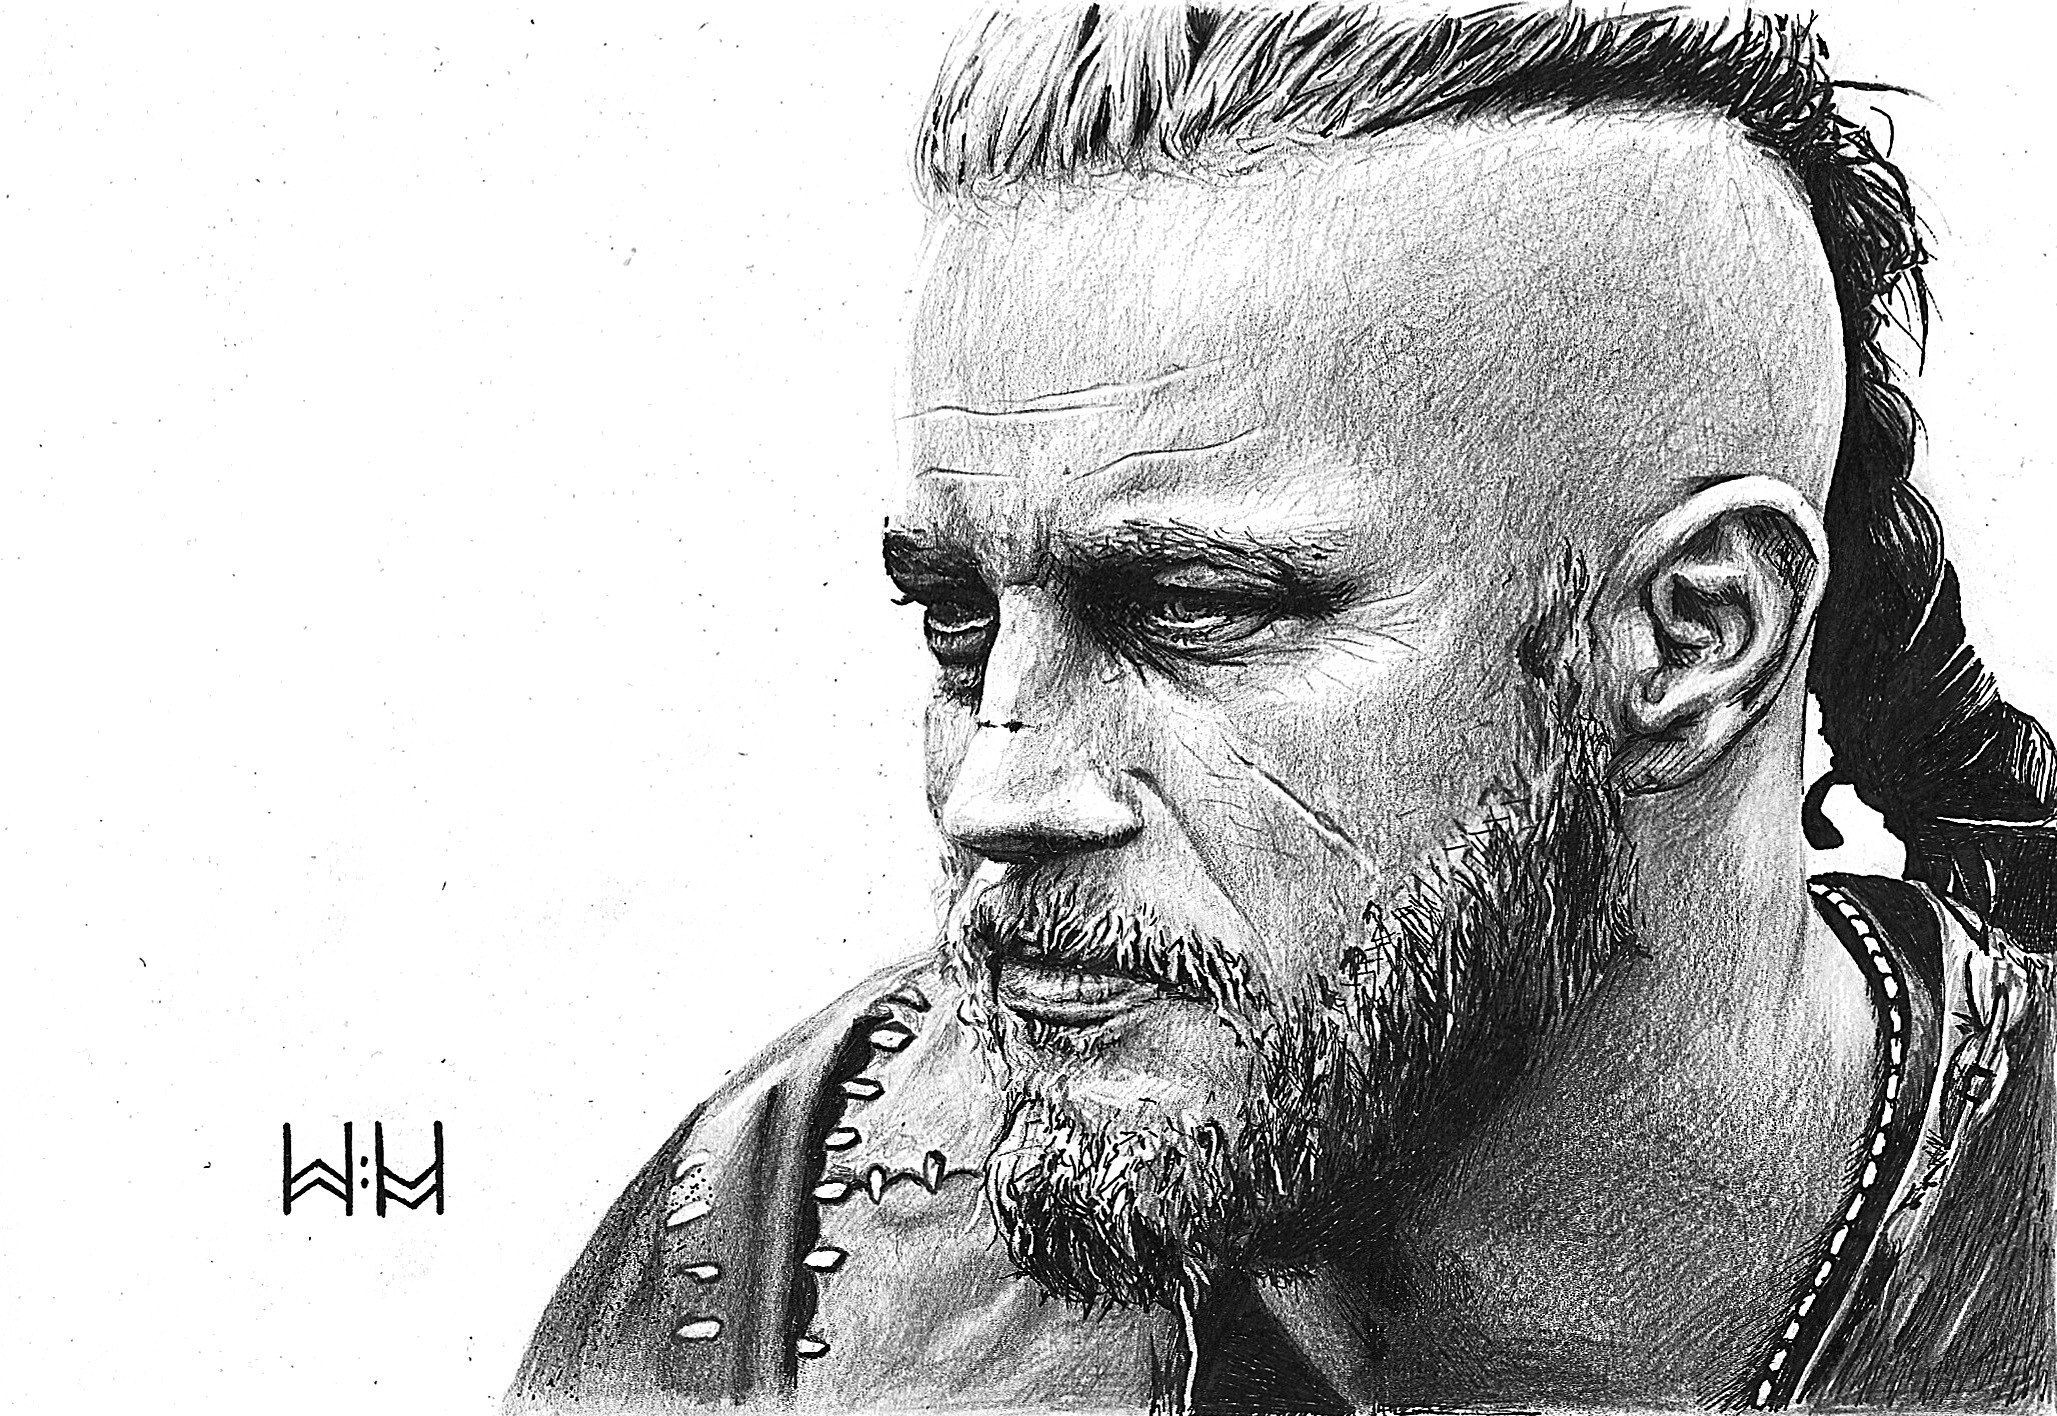 Ragnar Wallpapers Top Free Ragnar Backgrounds